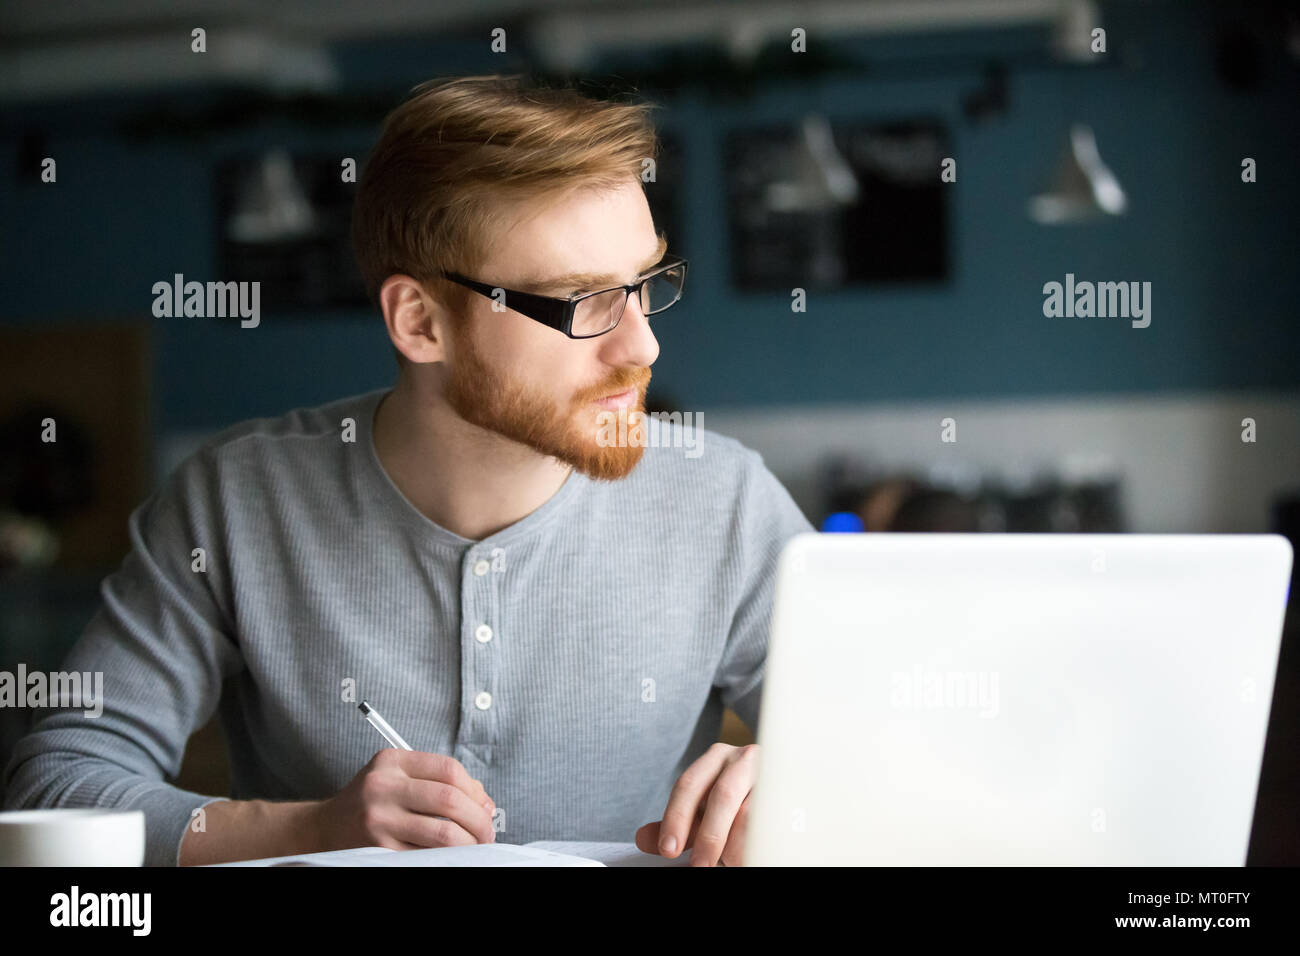 Thoughtful man thinking of new idea writing notes in cafe - Stock Image